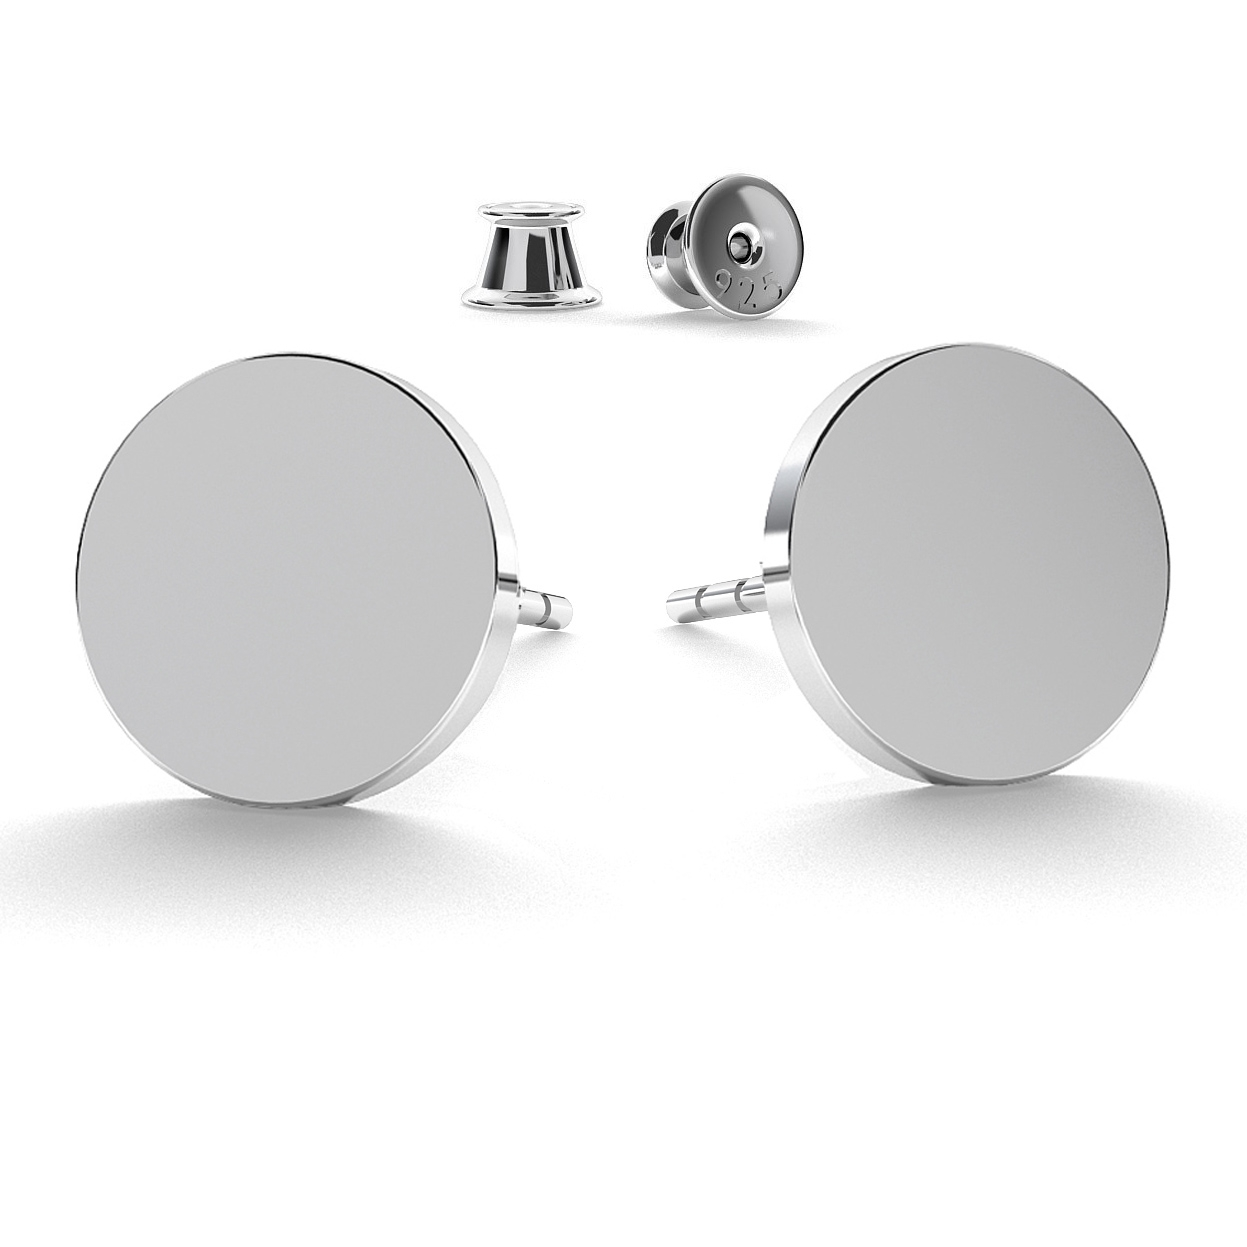 Round flat 11 mm earrings